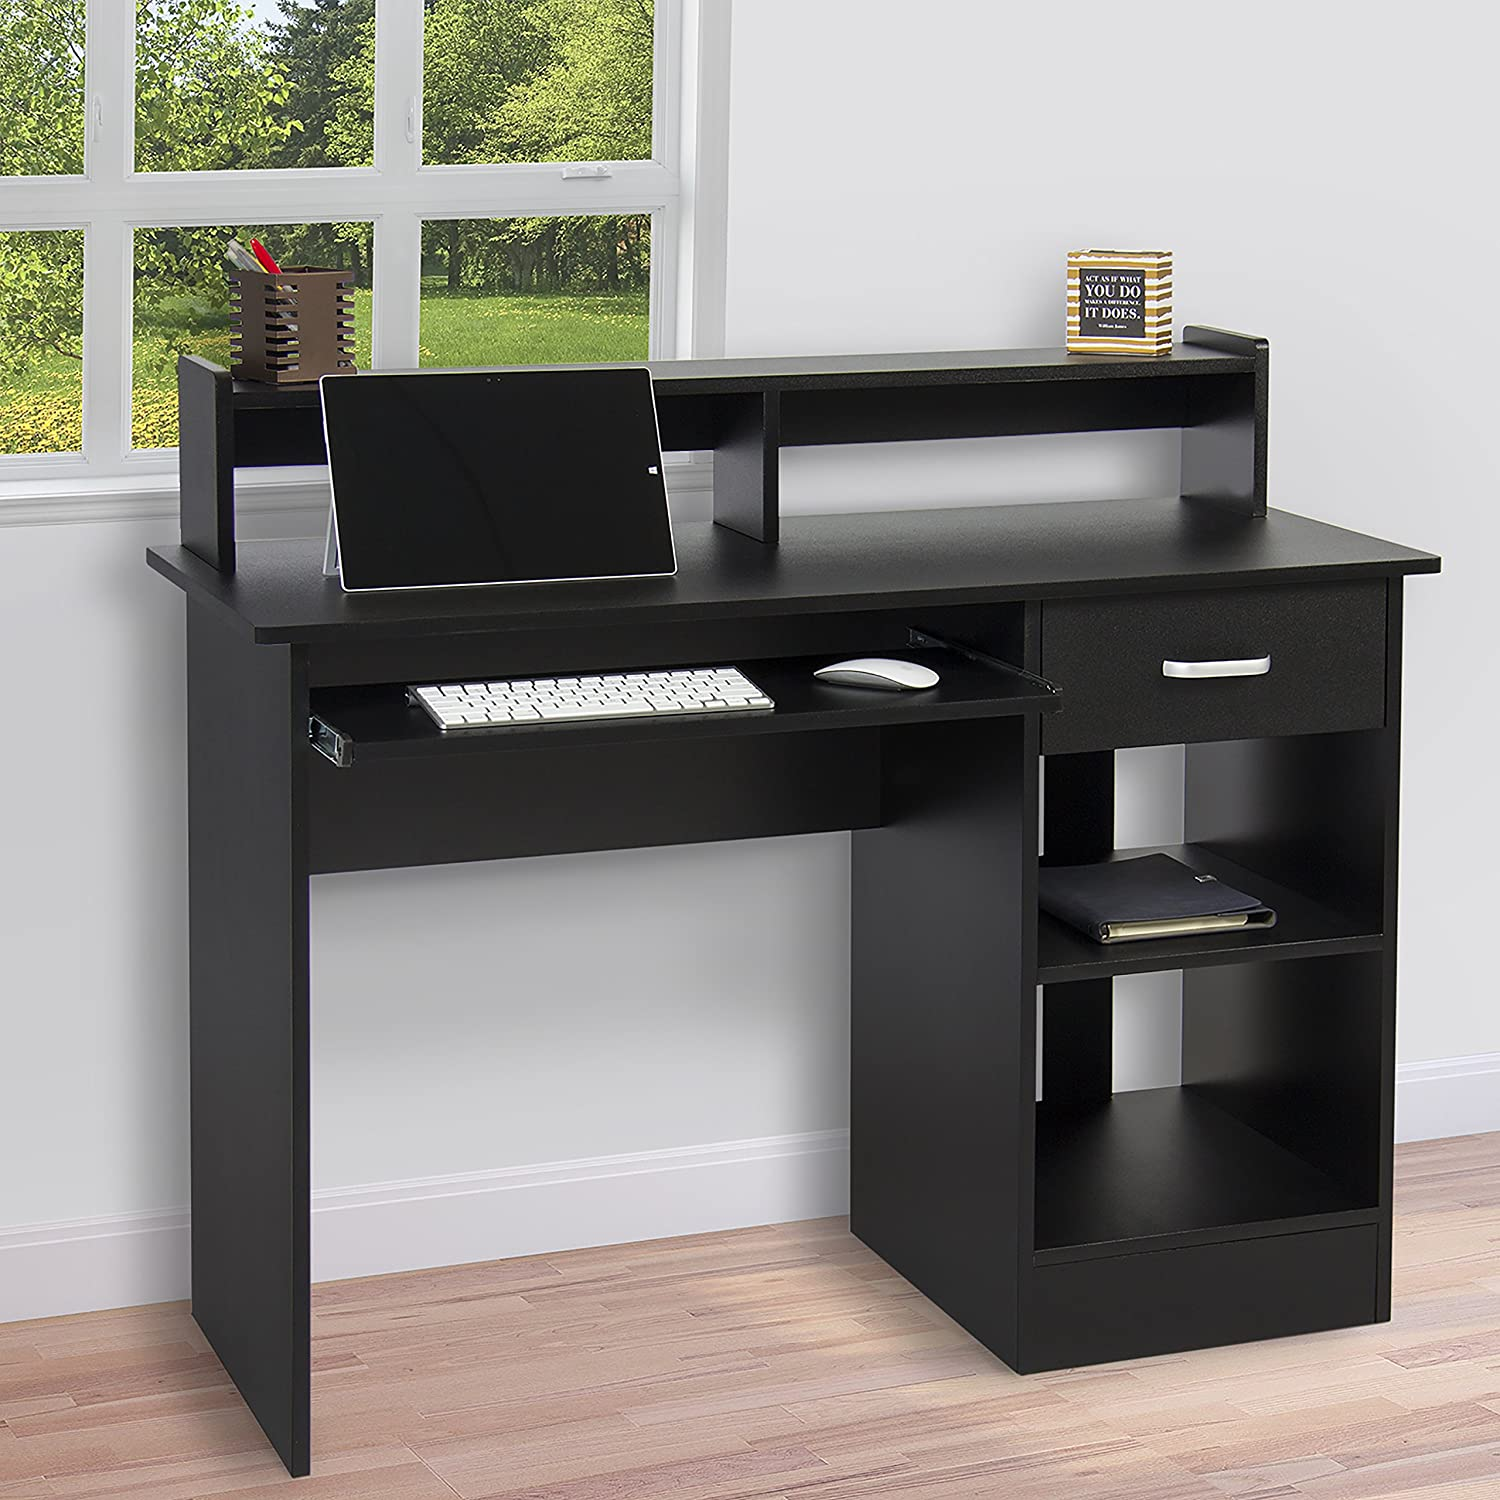 Best Choice Products Computer Desk Home Laptop Table College Home Office Furniture Work Station Blk